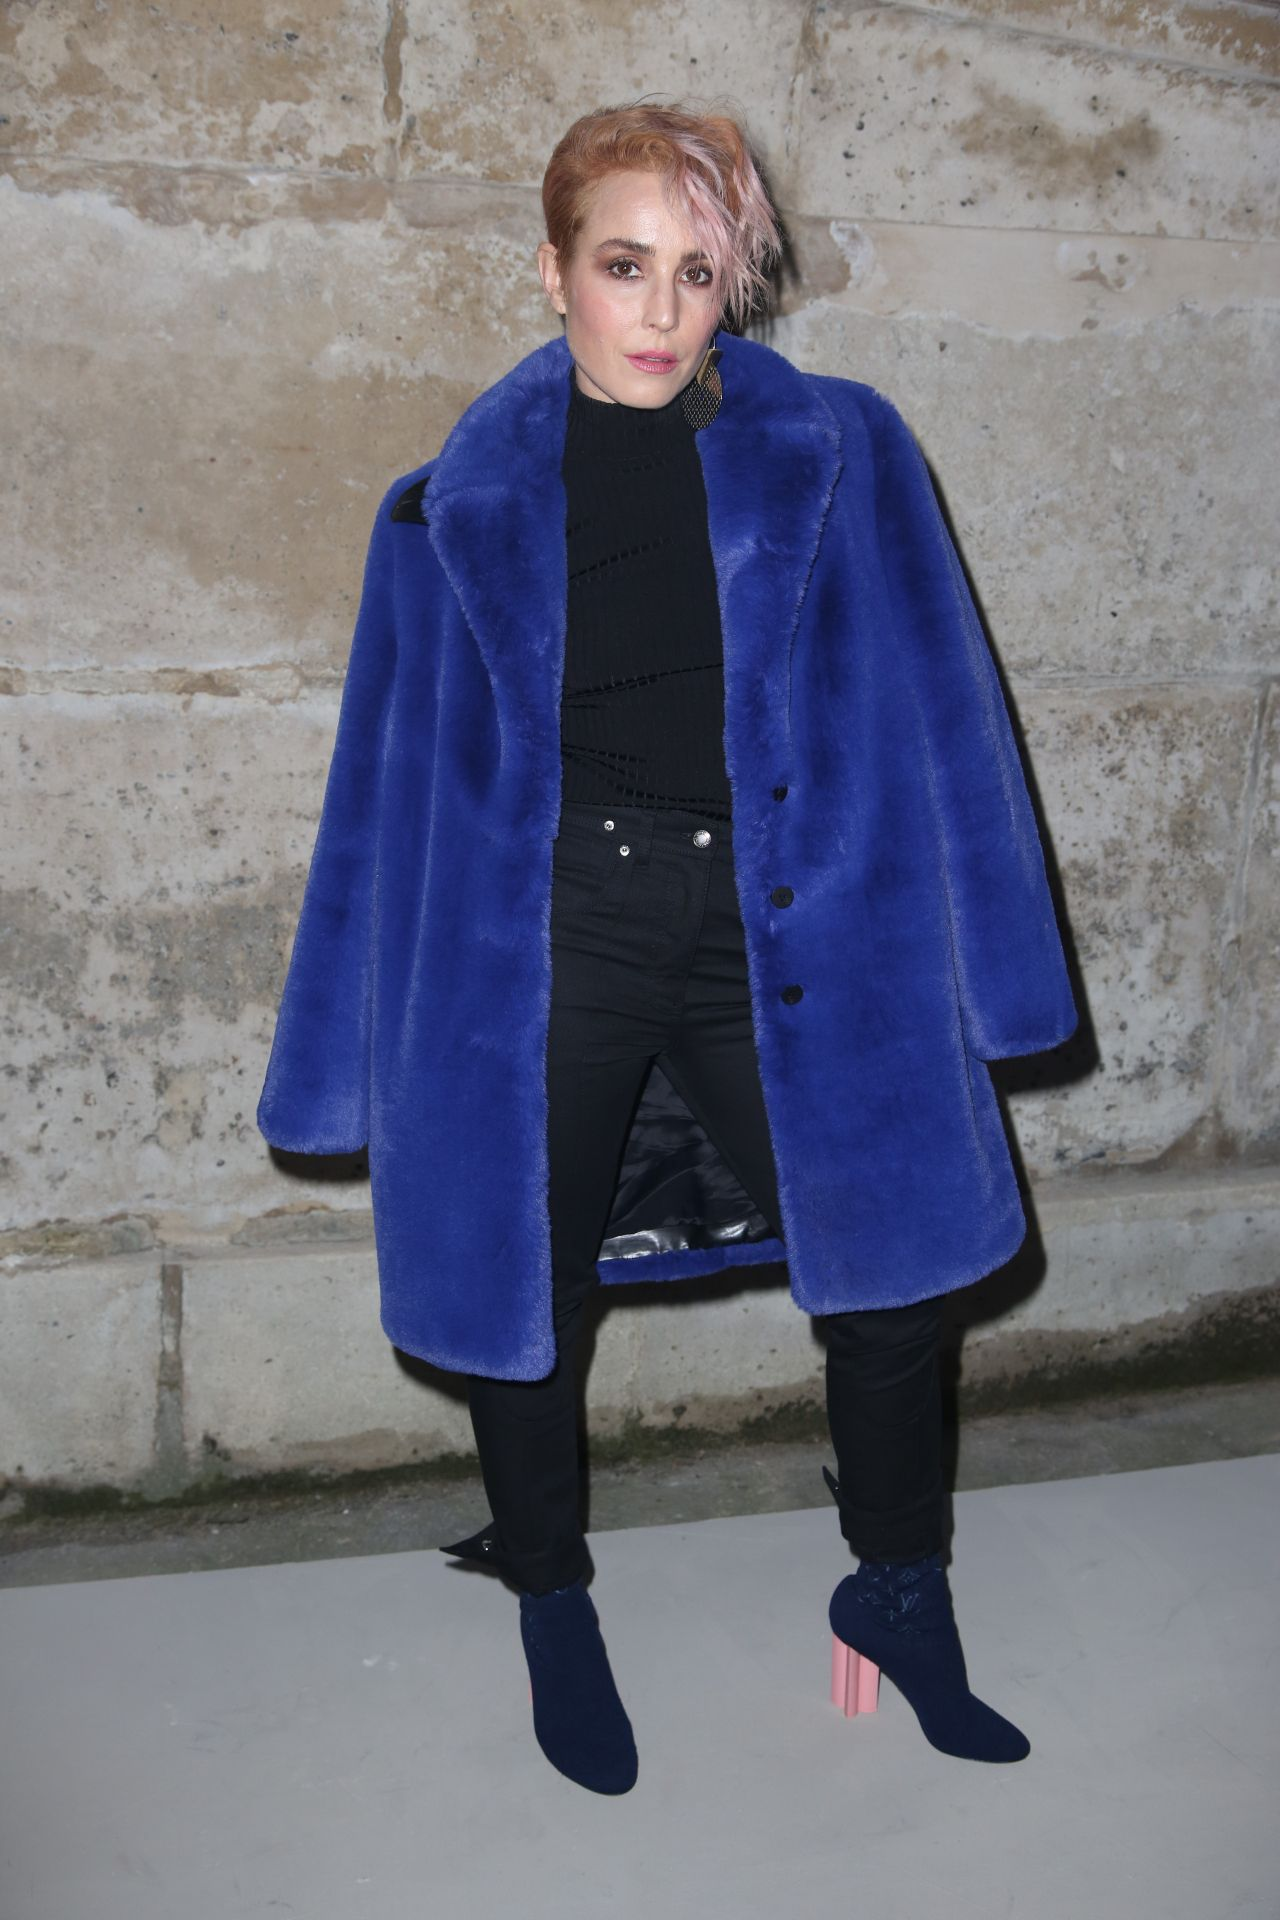 http://celebmafia.com/wp-content/uploads/2018/03/noomi-rapace-louis-vuitton-fashion-show-in-paris-03-06-2018-3.jpg